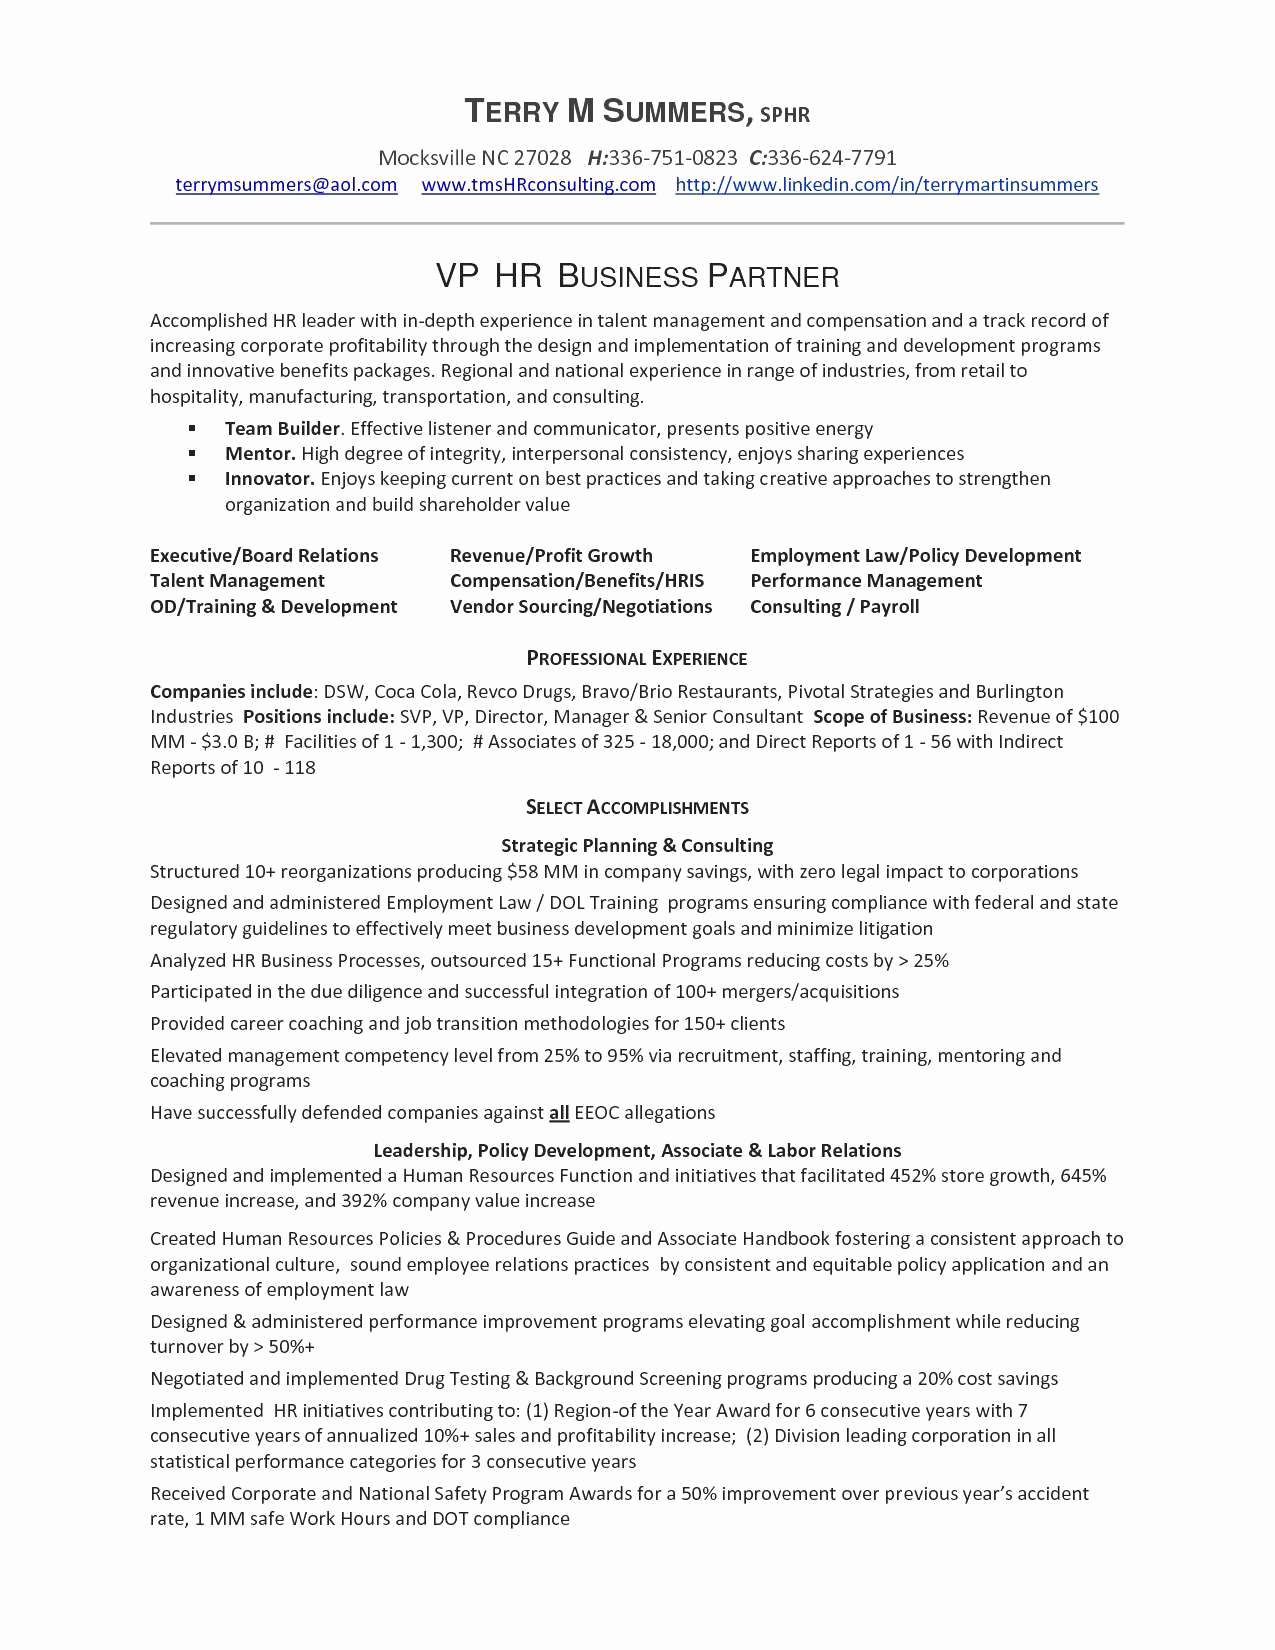 Ats Compliant Resume - ats Friendly Resume Template Awesome ats Friendly Resume Template